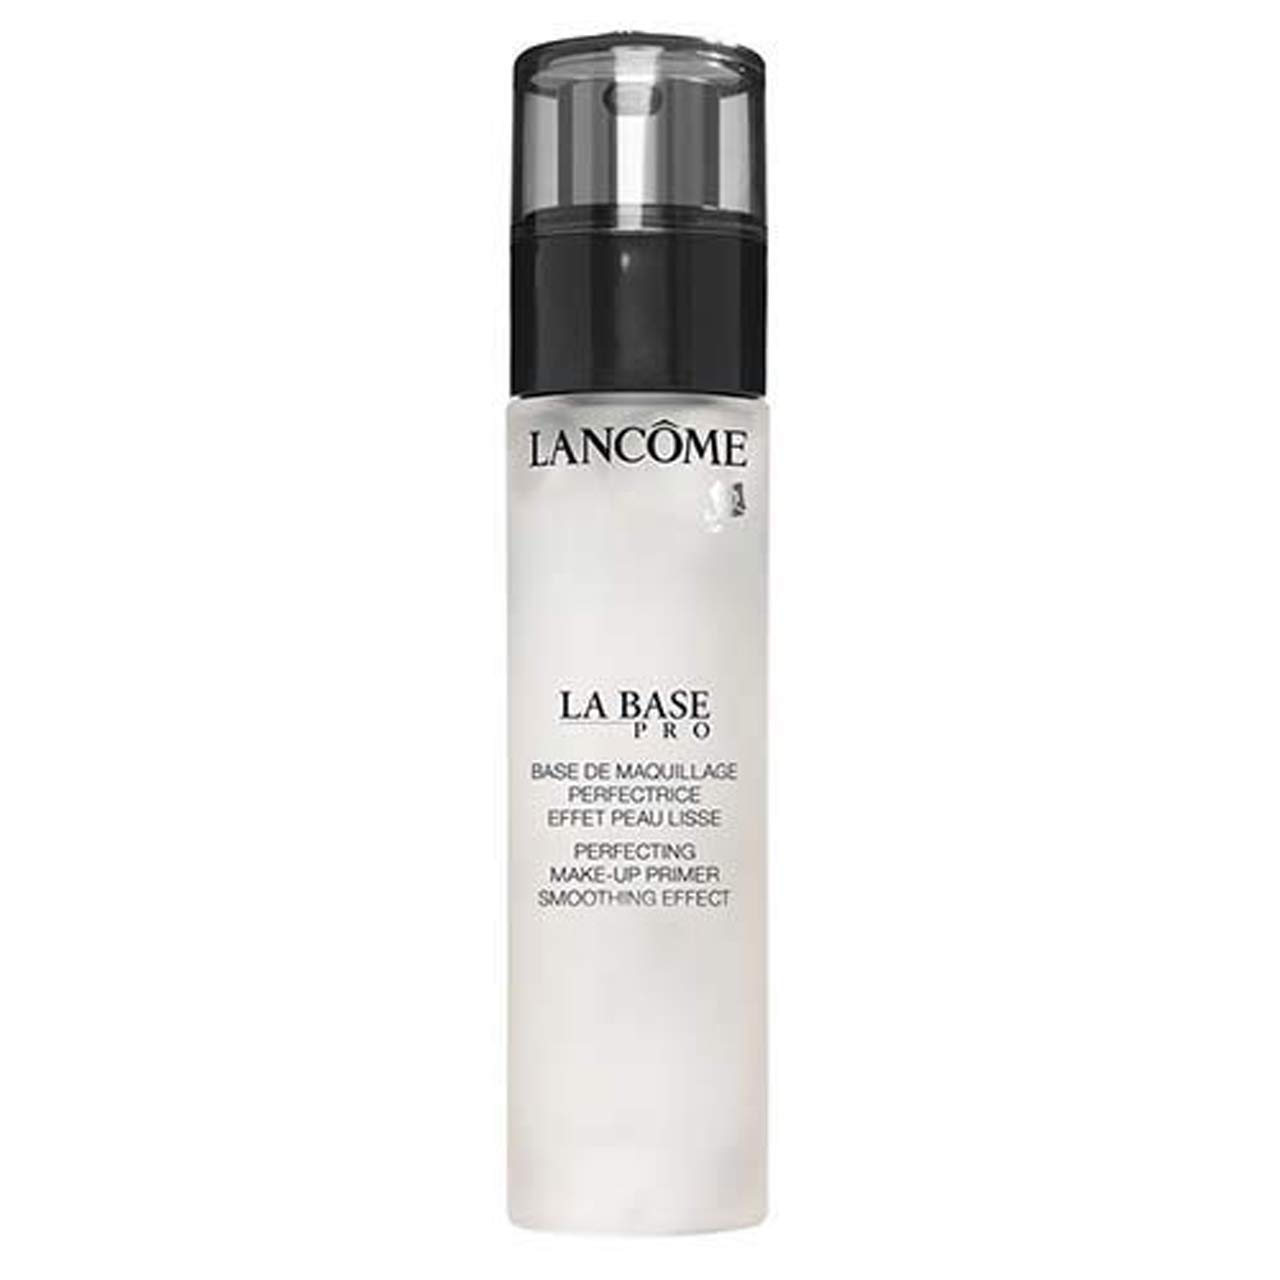 Lancome La Base Pro Perfecting Makeup Primer, 0.8 Ounce